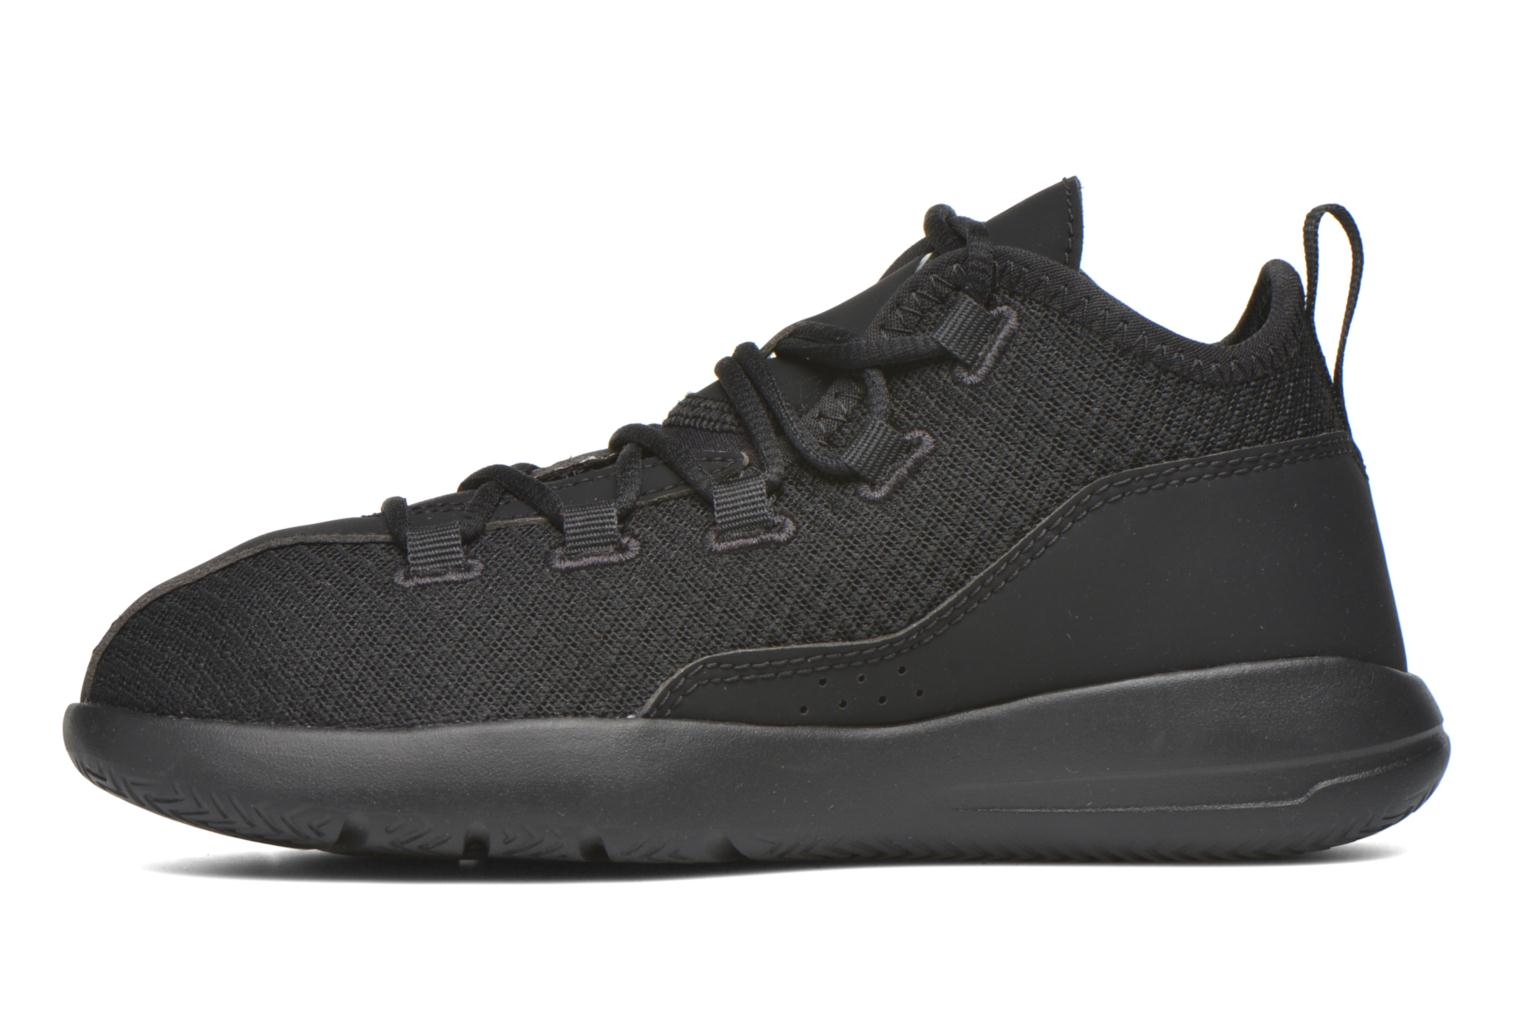 Jordan Reveal Bp Black/Black-Black-Infrared 23